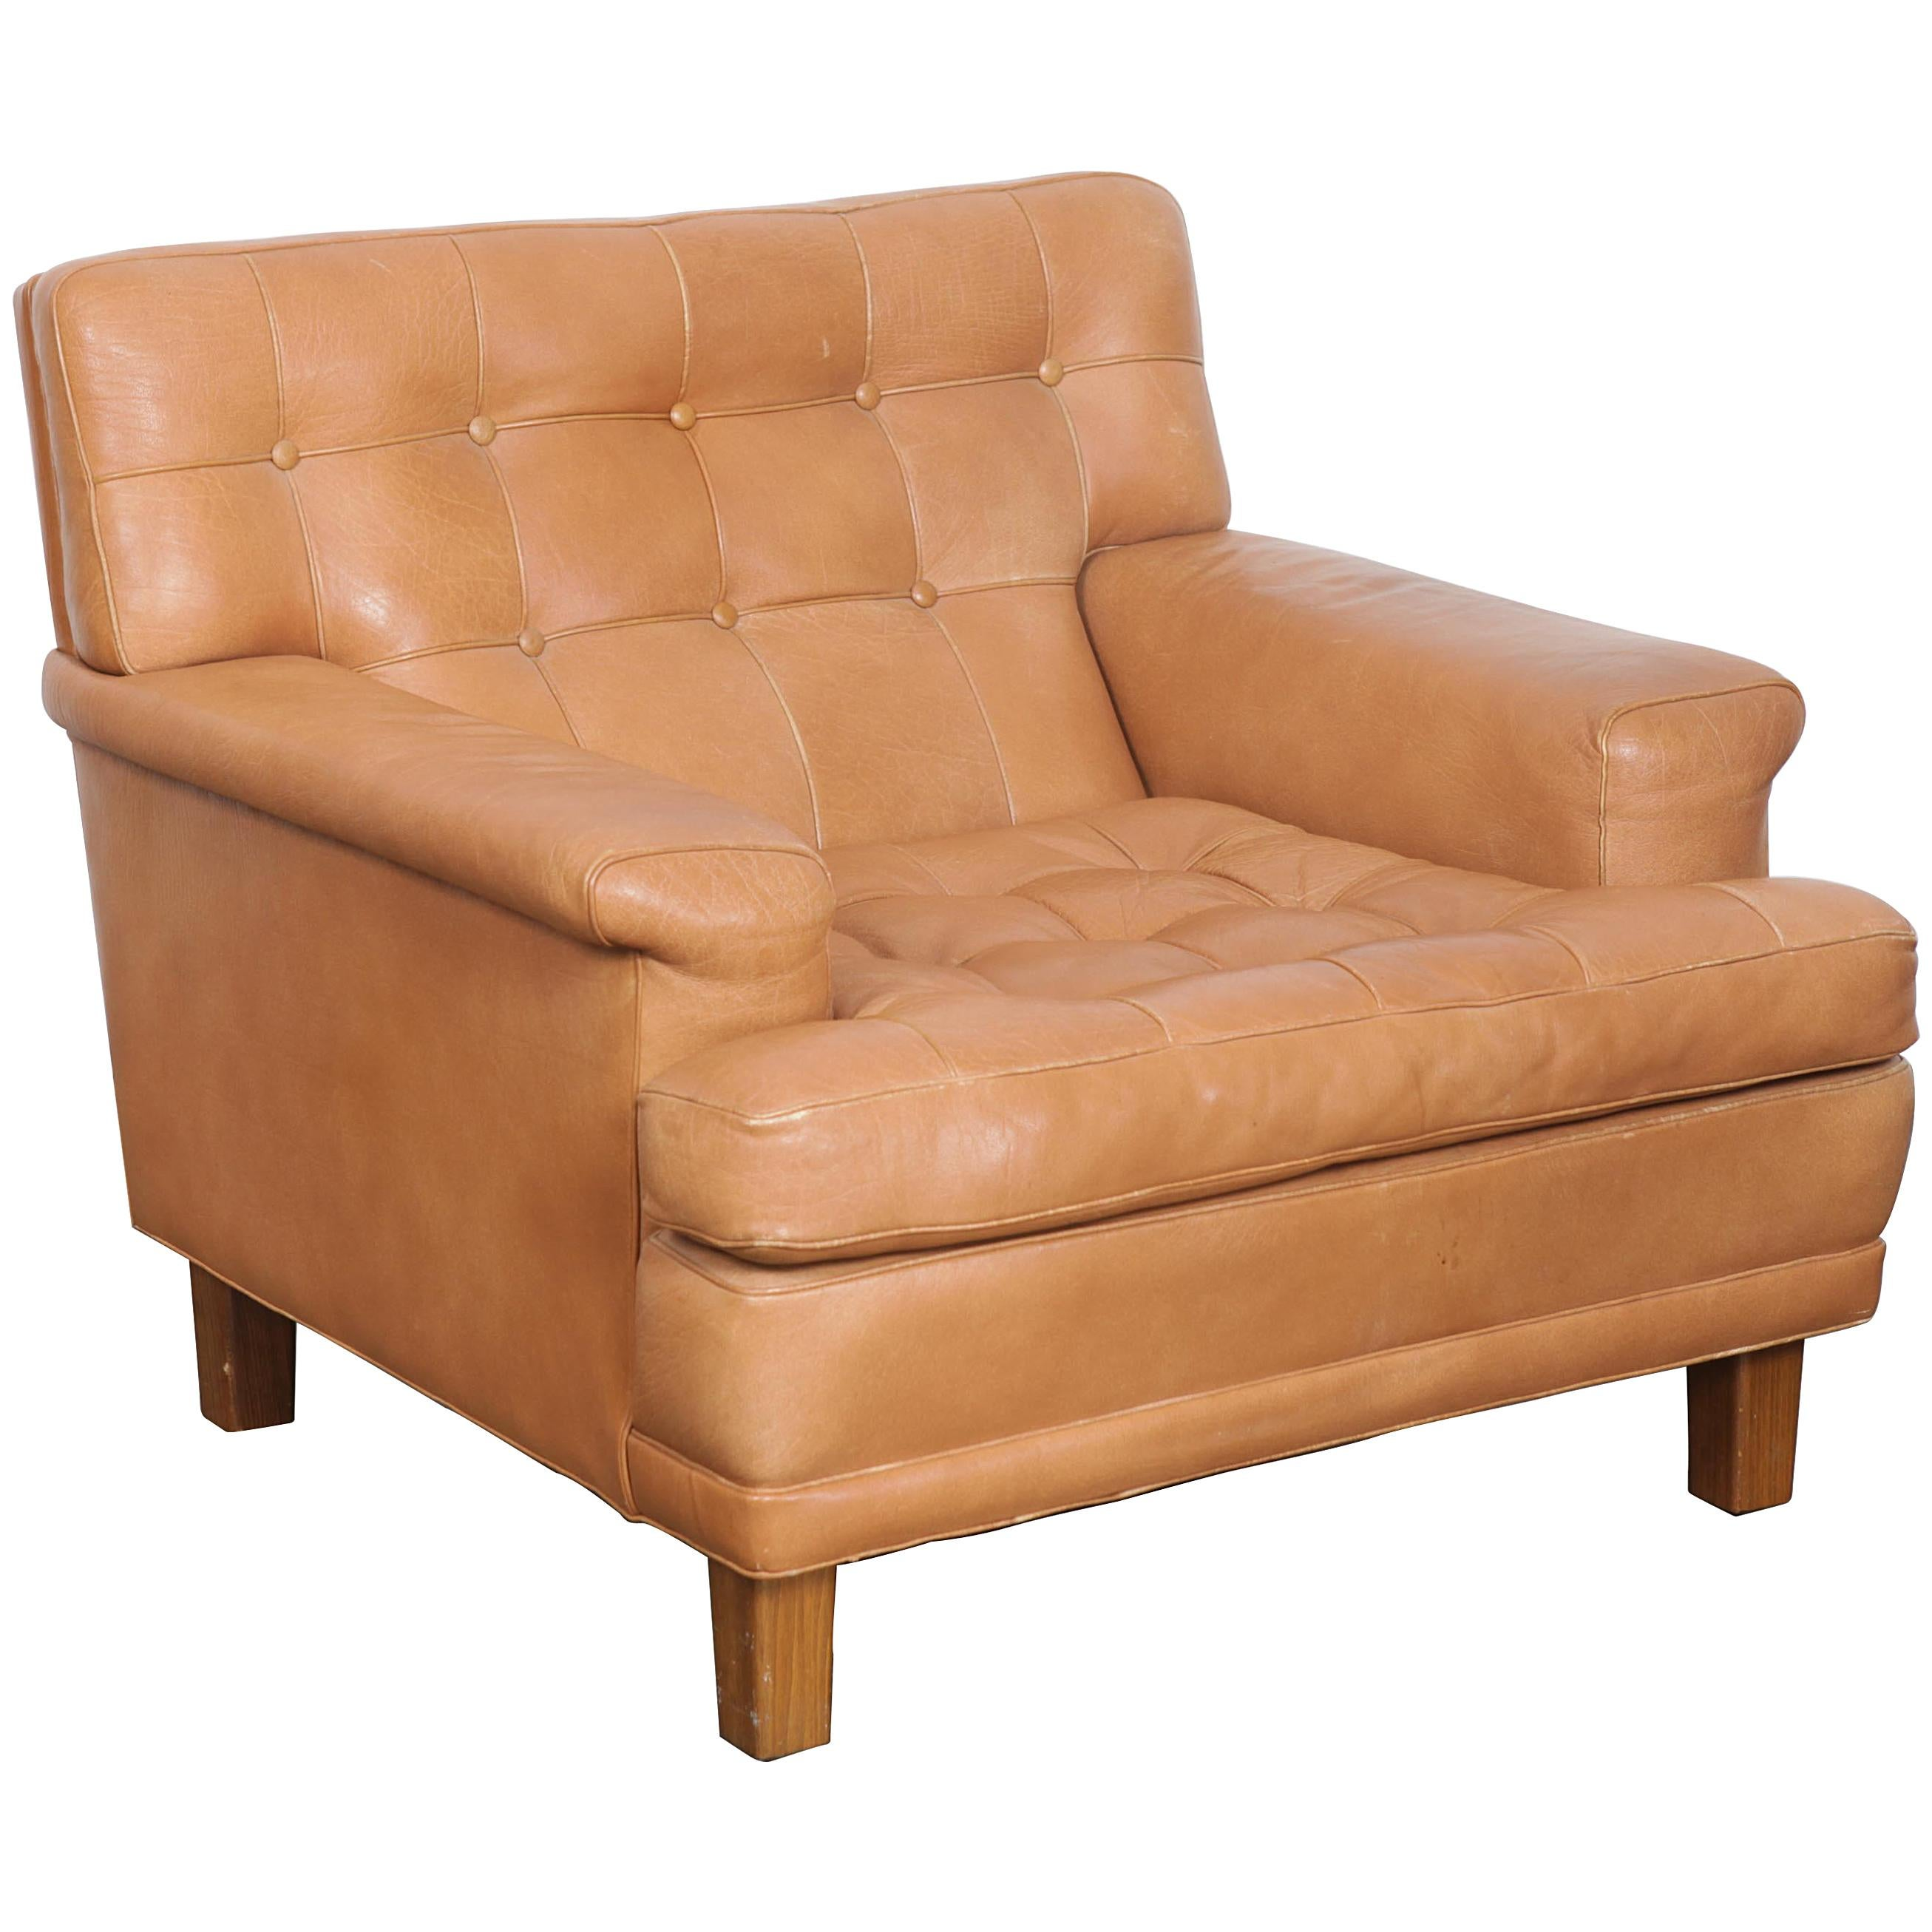 Arne Norell Merkur Tan Leather Tufted Lounge Chair Sweden